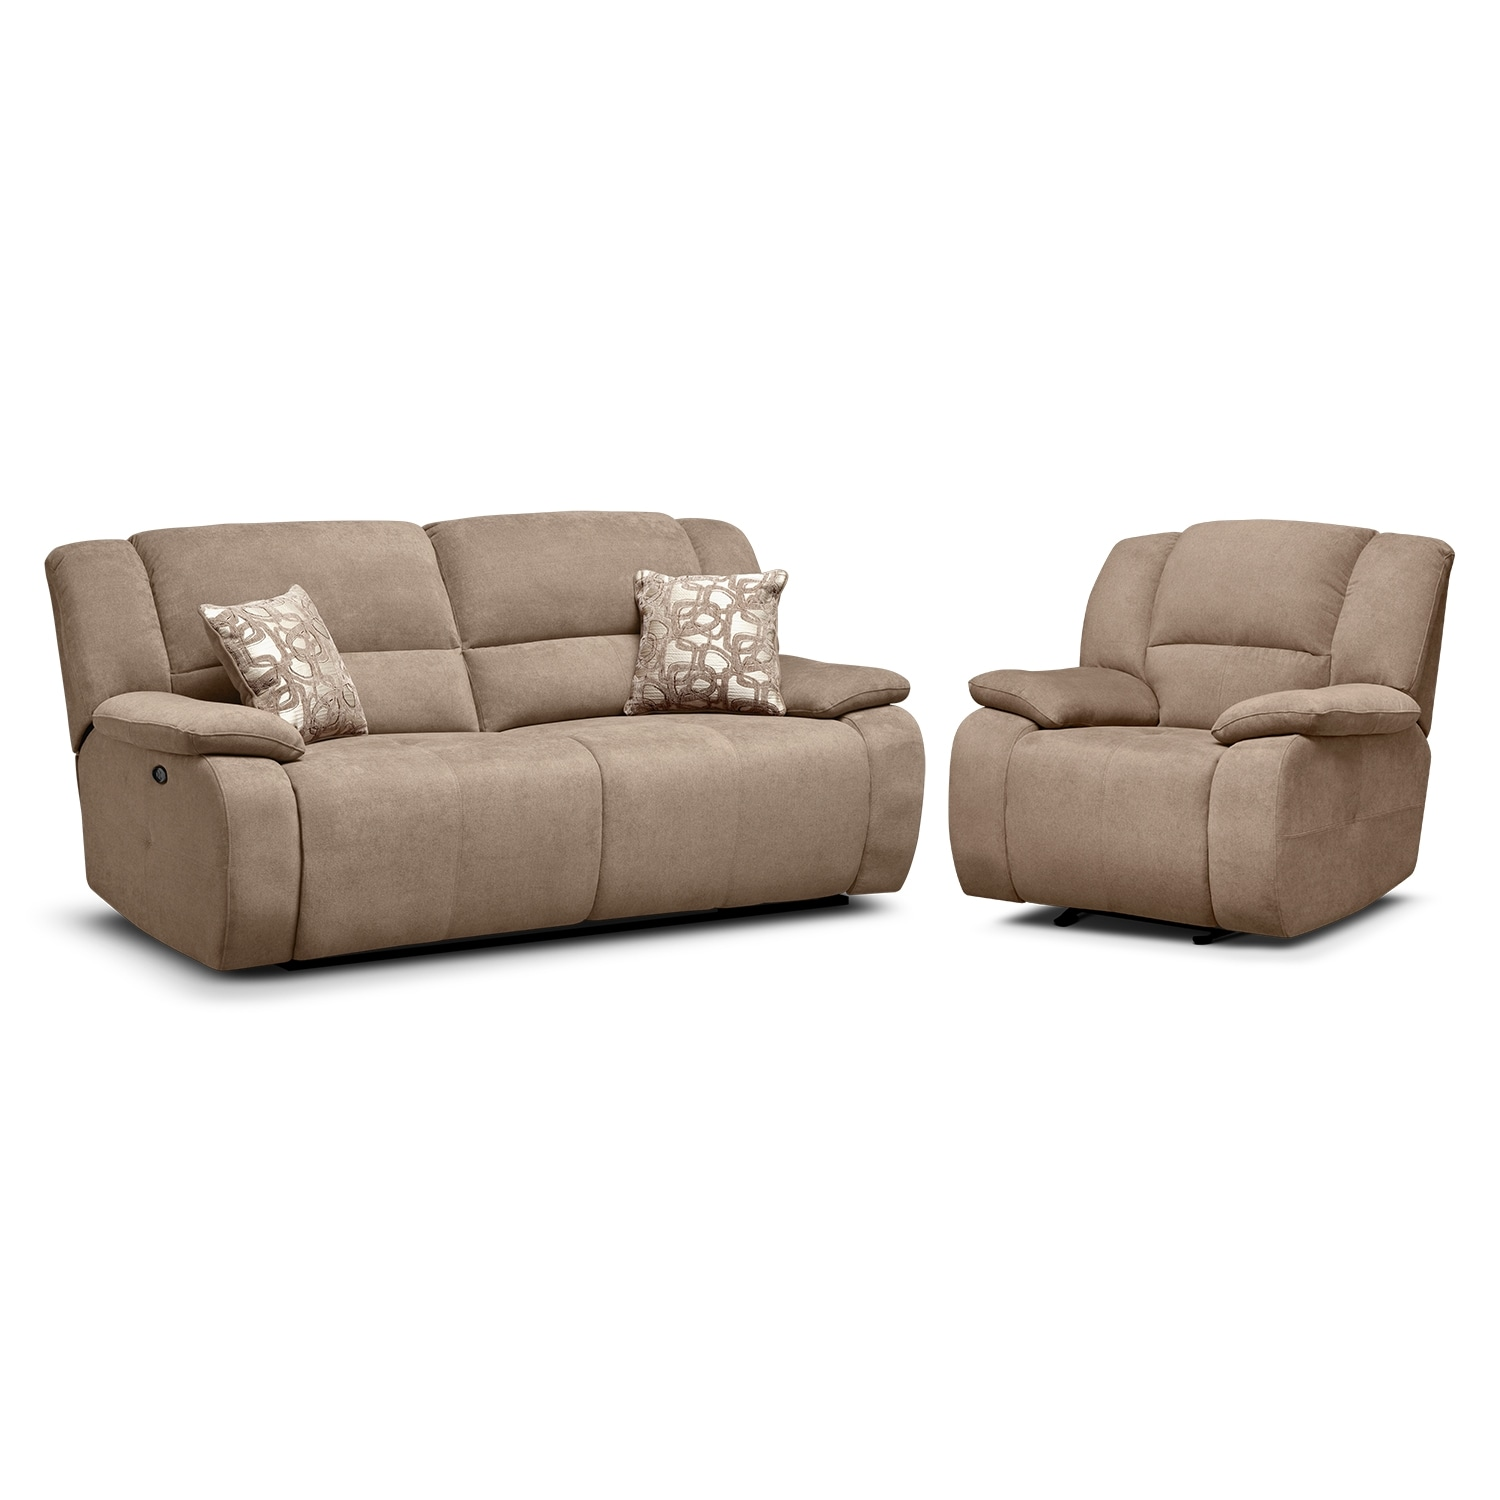 Living Room Furniture - Destin Beige 2 Pc. Power Reclining Living Room w/Recliner